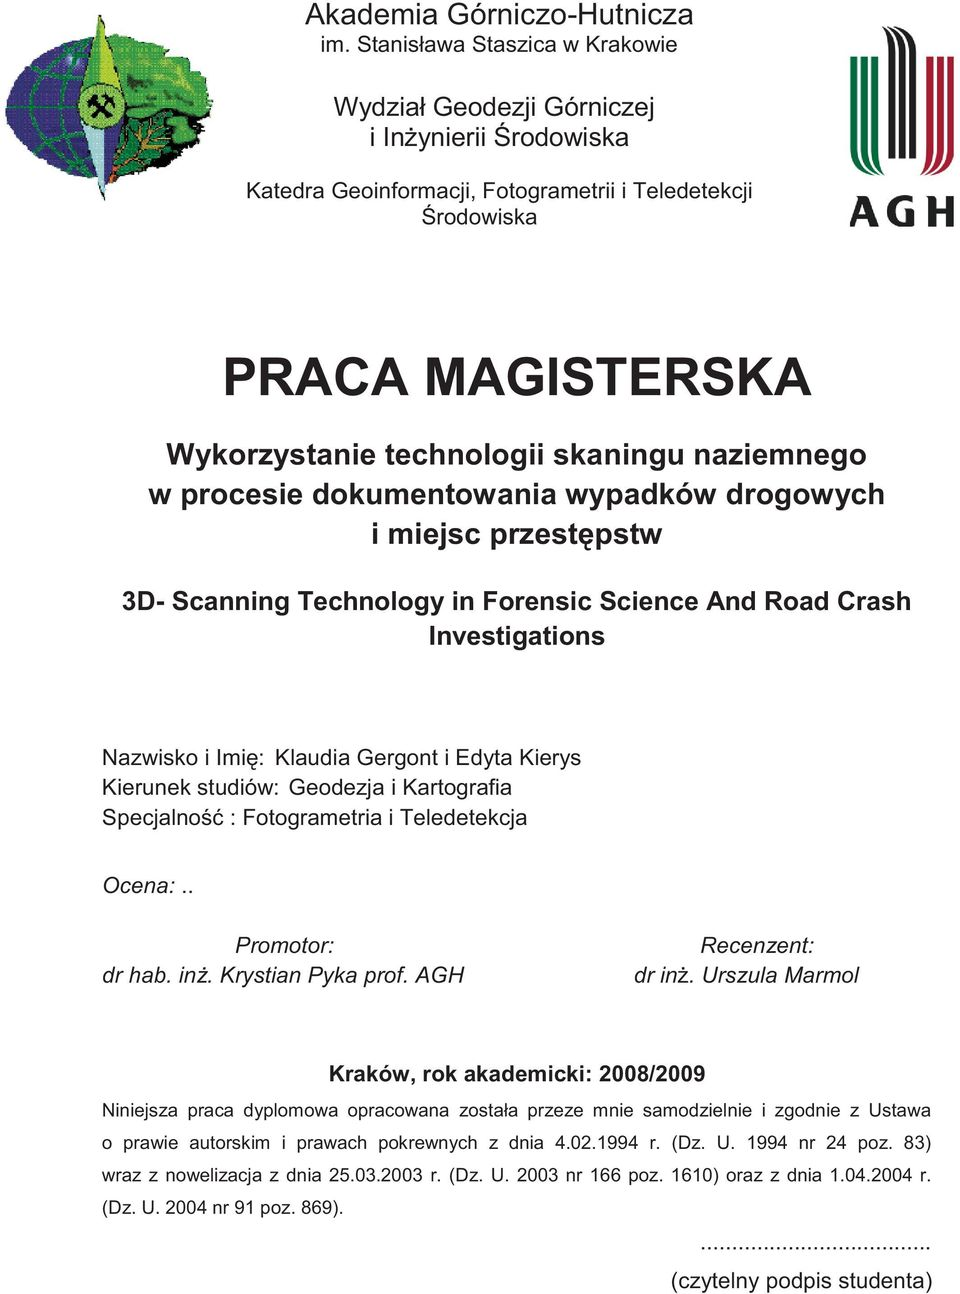 naziemnego w procesie dokumentowania wypadków drogowych i miejsc przestępstw 3D- Scanning Technology in Forensic Science And Road Crash Investigations Nazwisko i Imię: Klaudia Gergont i Edyta Kierys